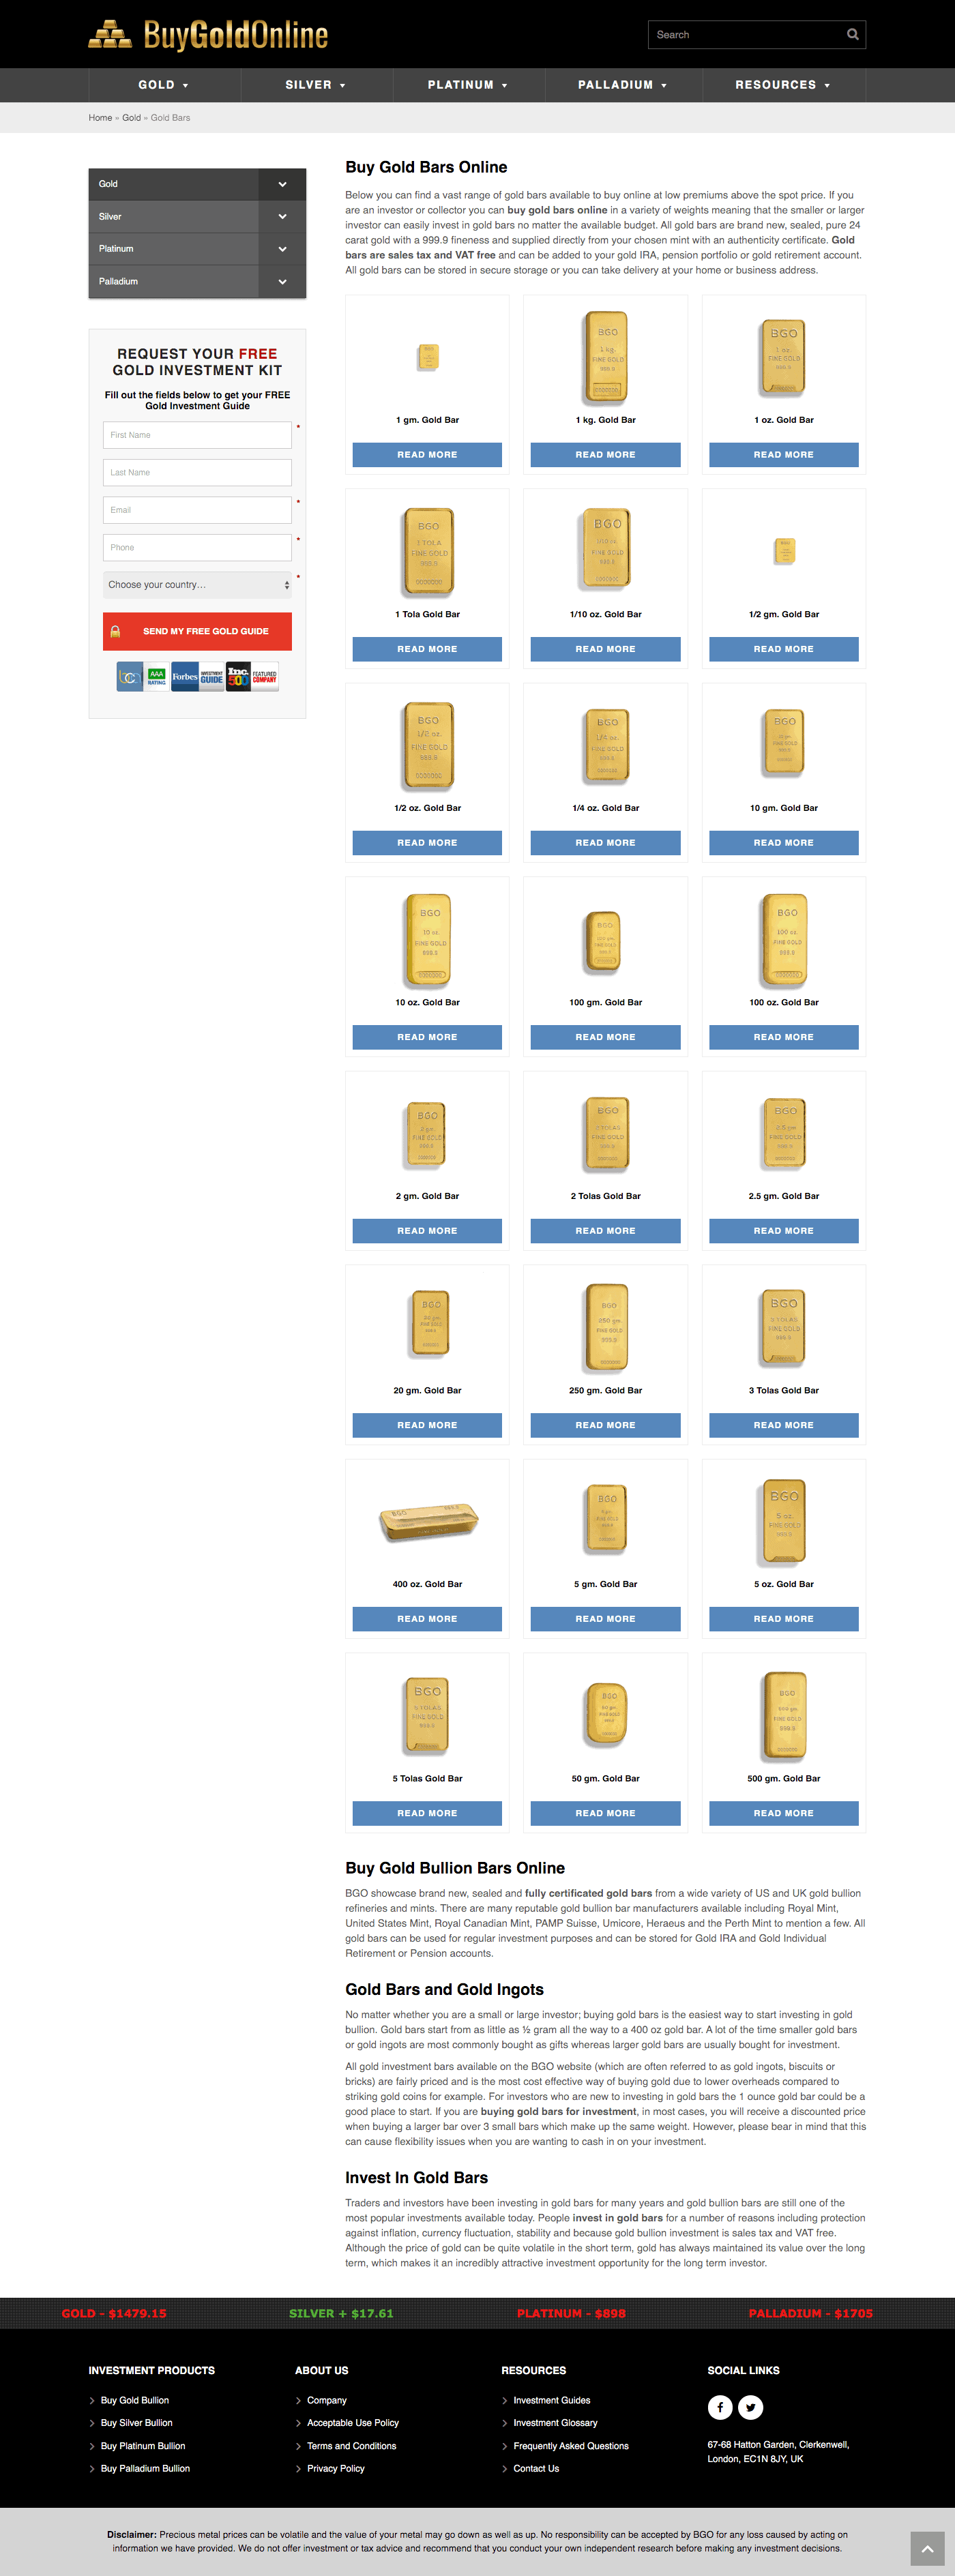 Buy Gold Online - Category